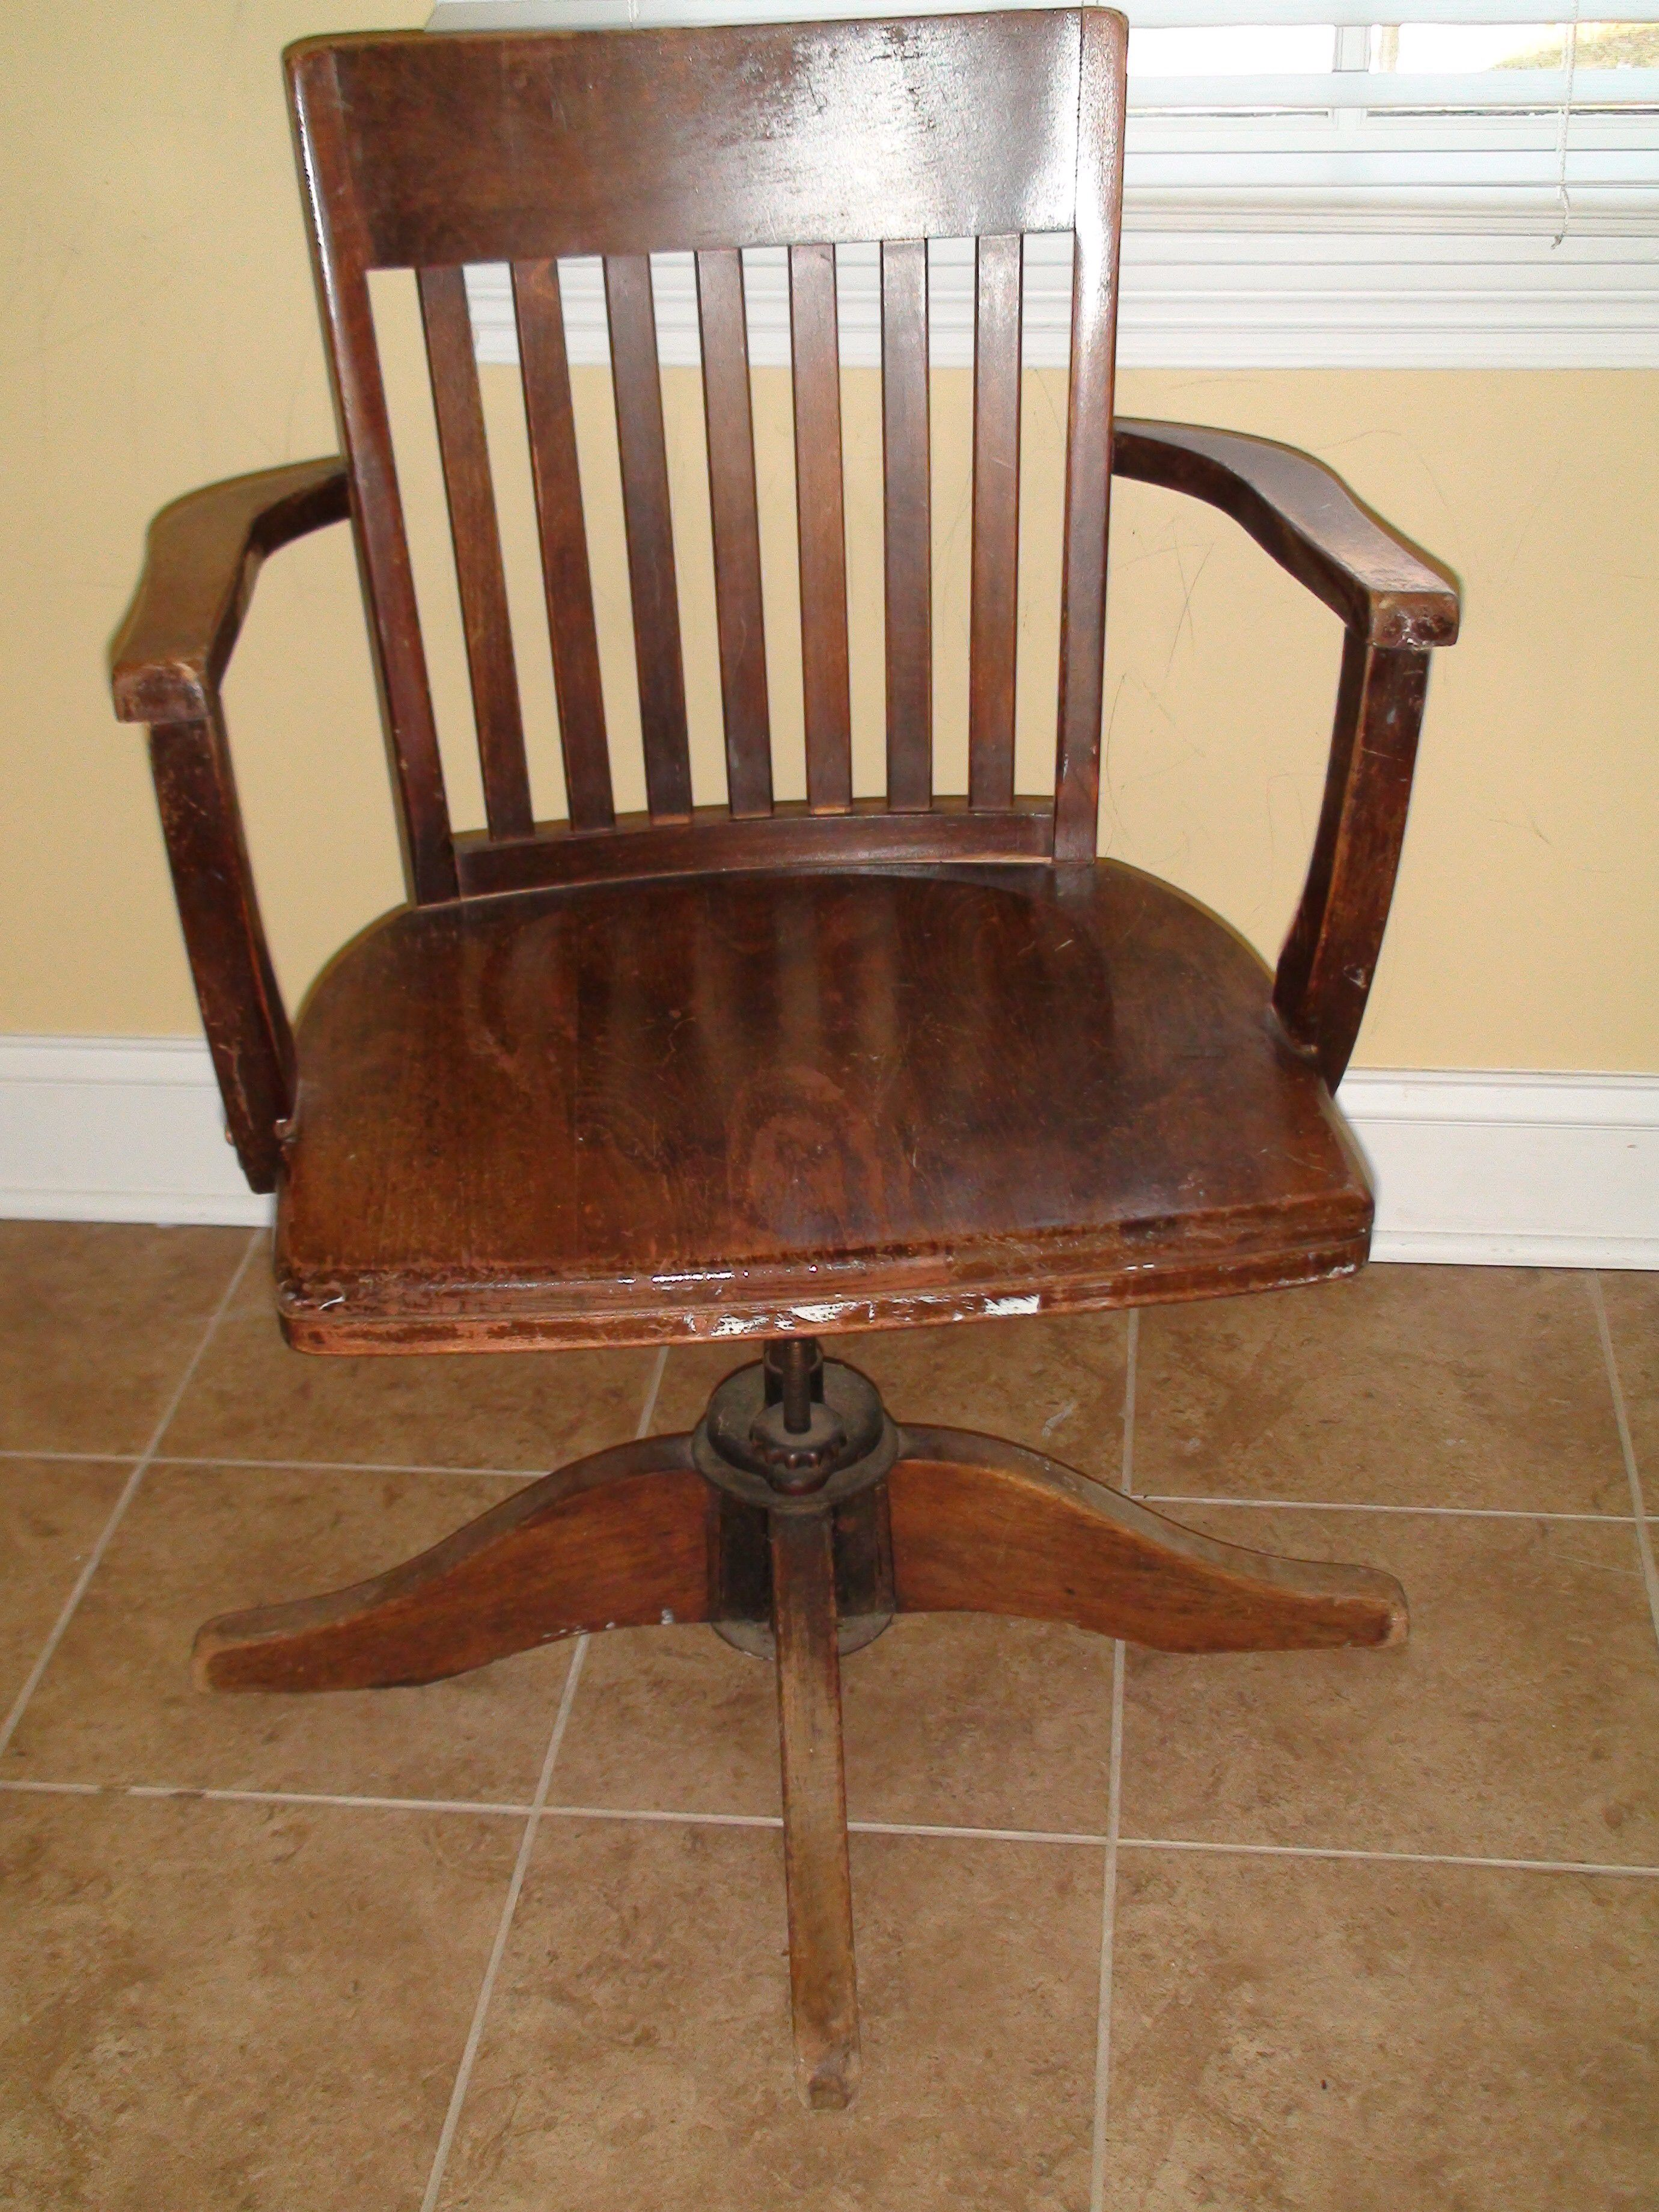 Might be ( Antique desk chair, Wooden desk